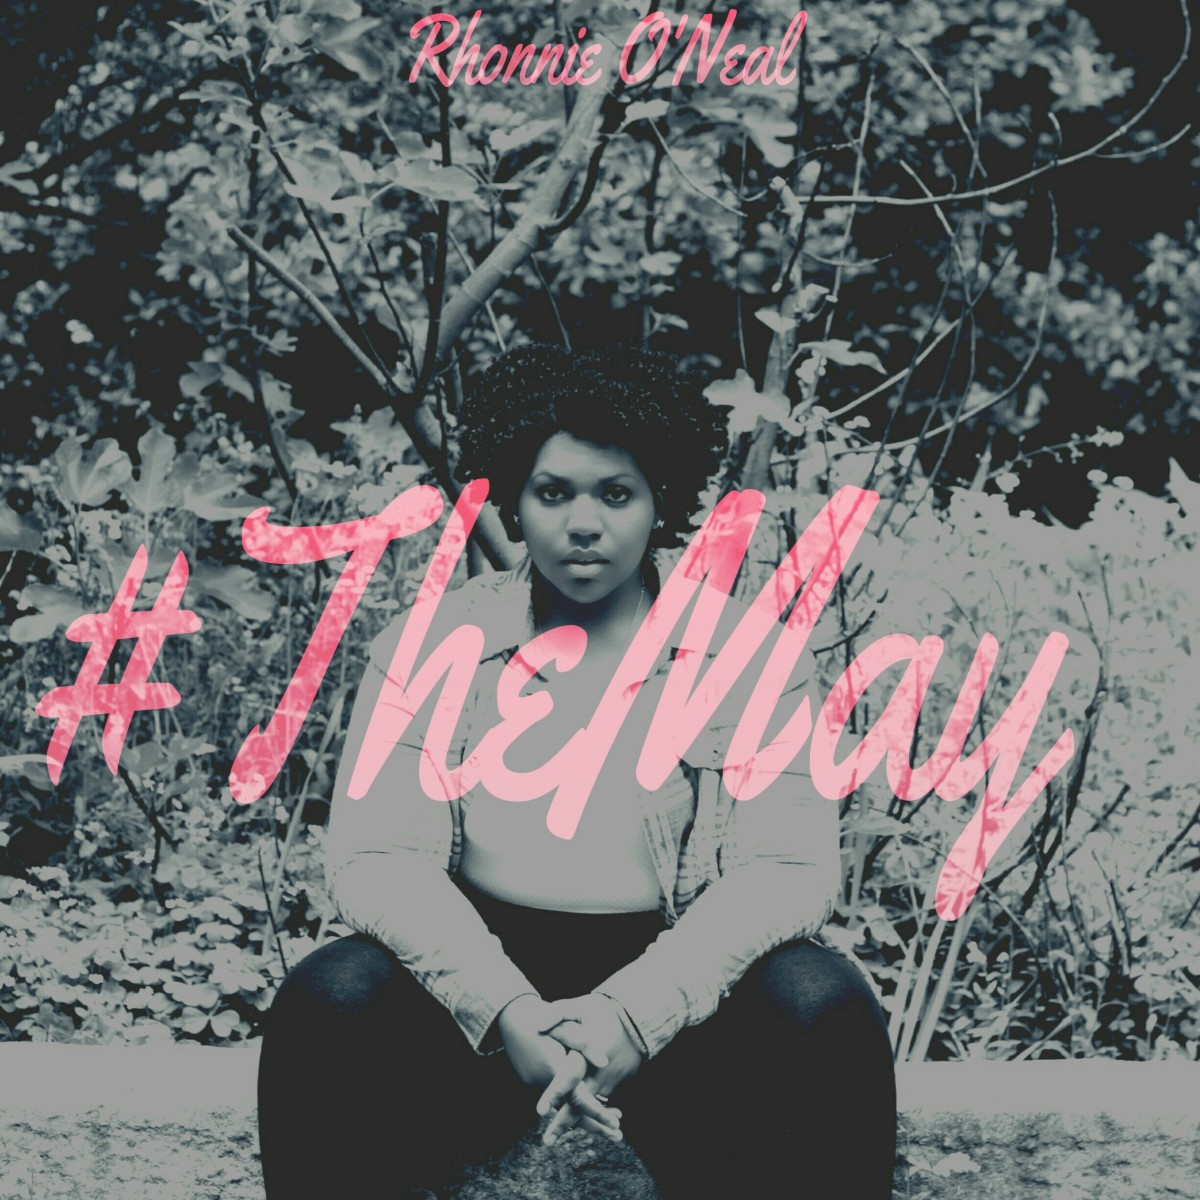 Rhonnie O'Neal - The May